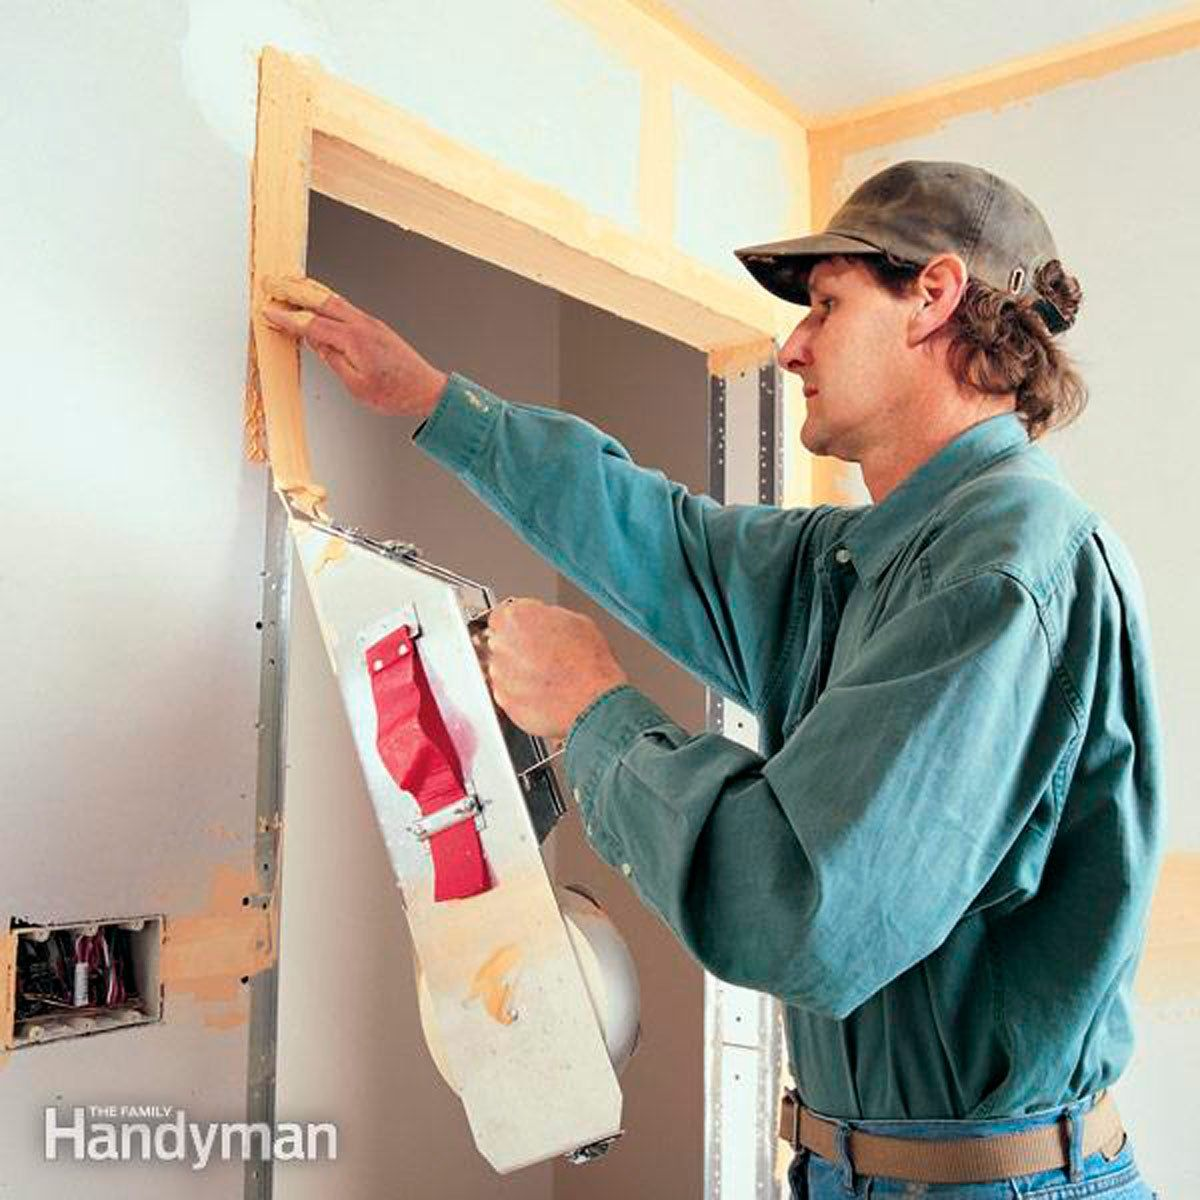 How to Tape Drywall Drywall, Home improvement, Drywall mud